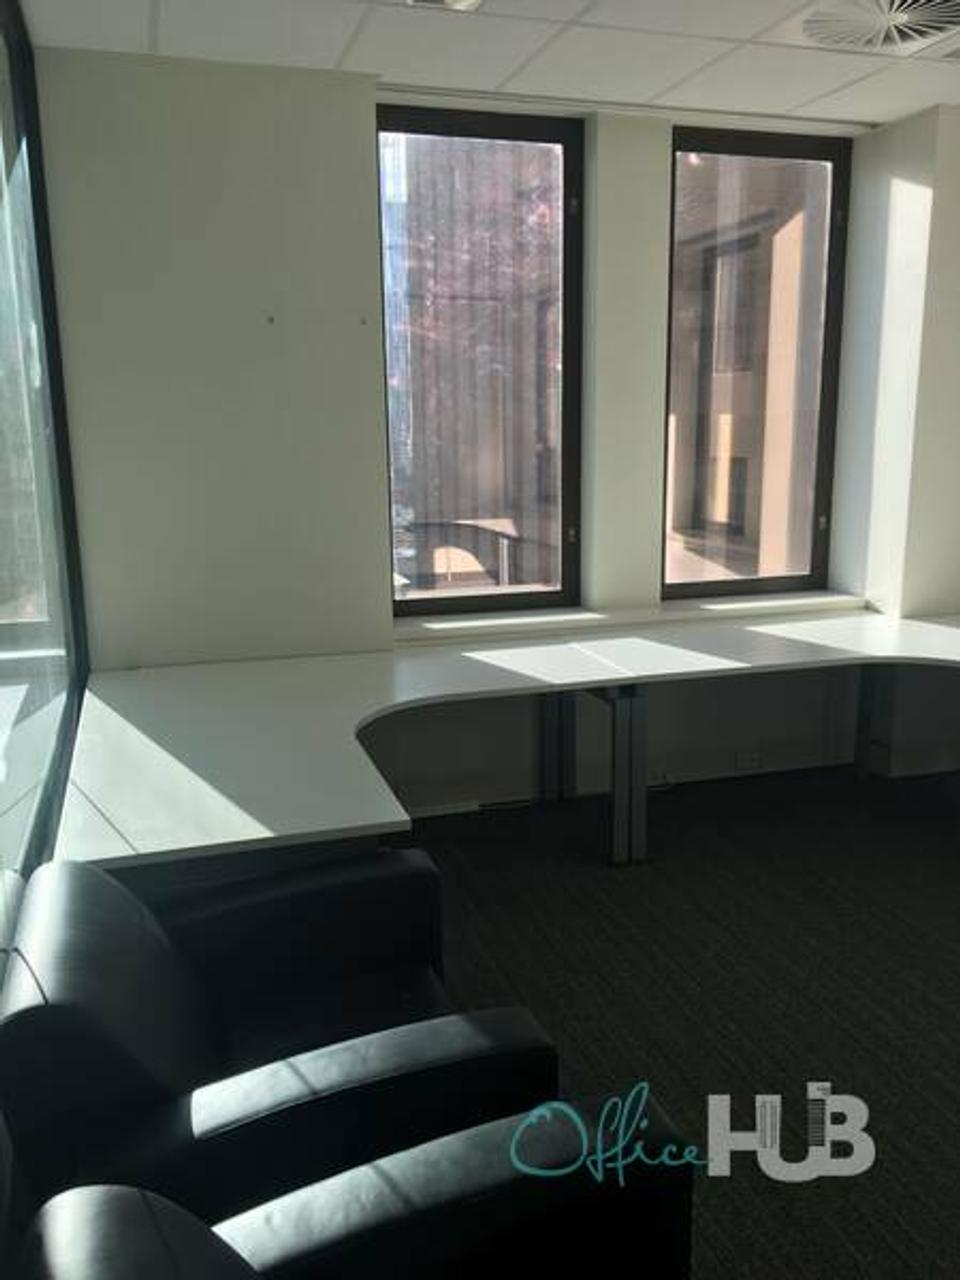 2 Person Private Office For Lease At 379 Collins Street, MELBOURNE, VIC, 3000 - image 1